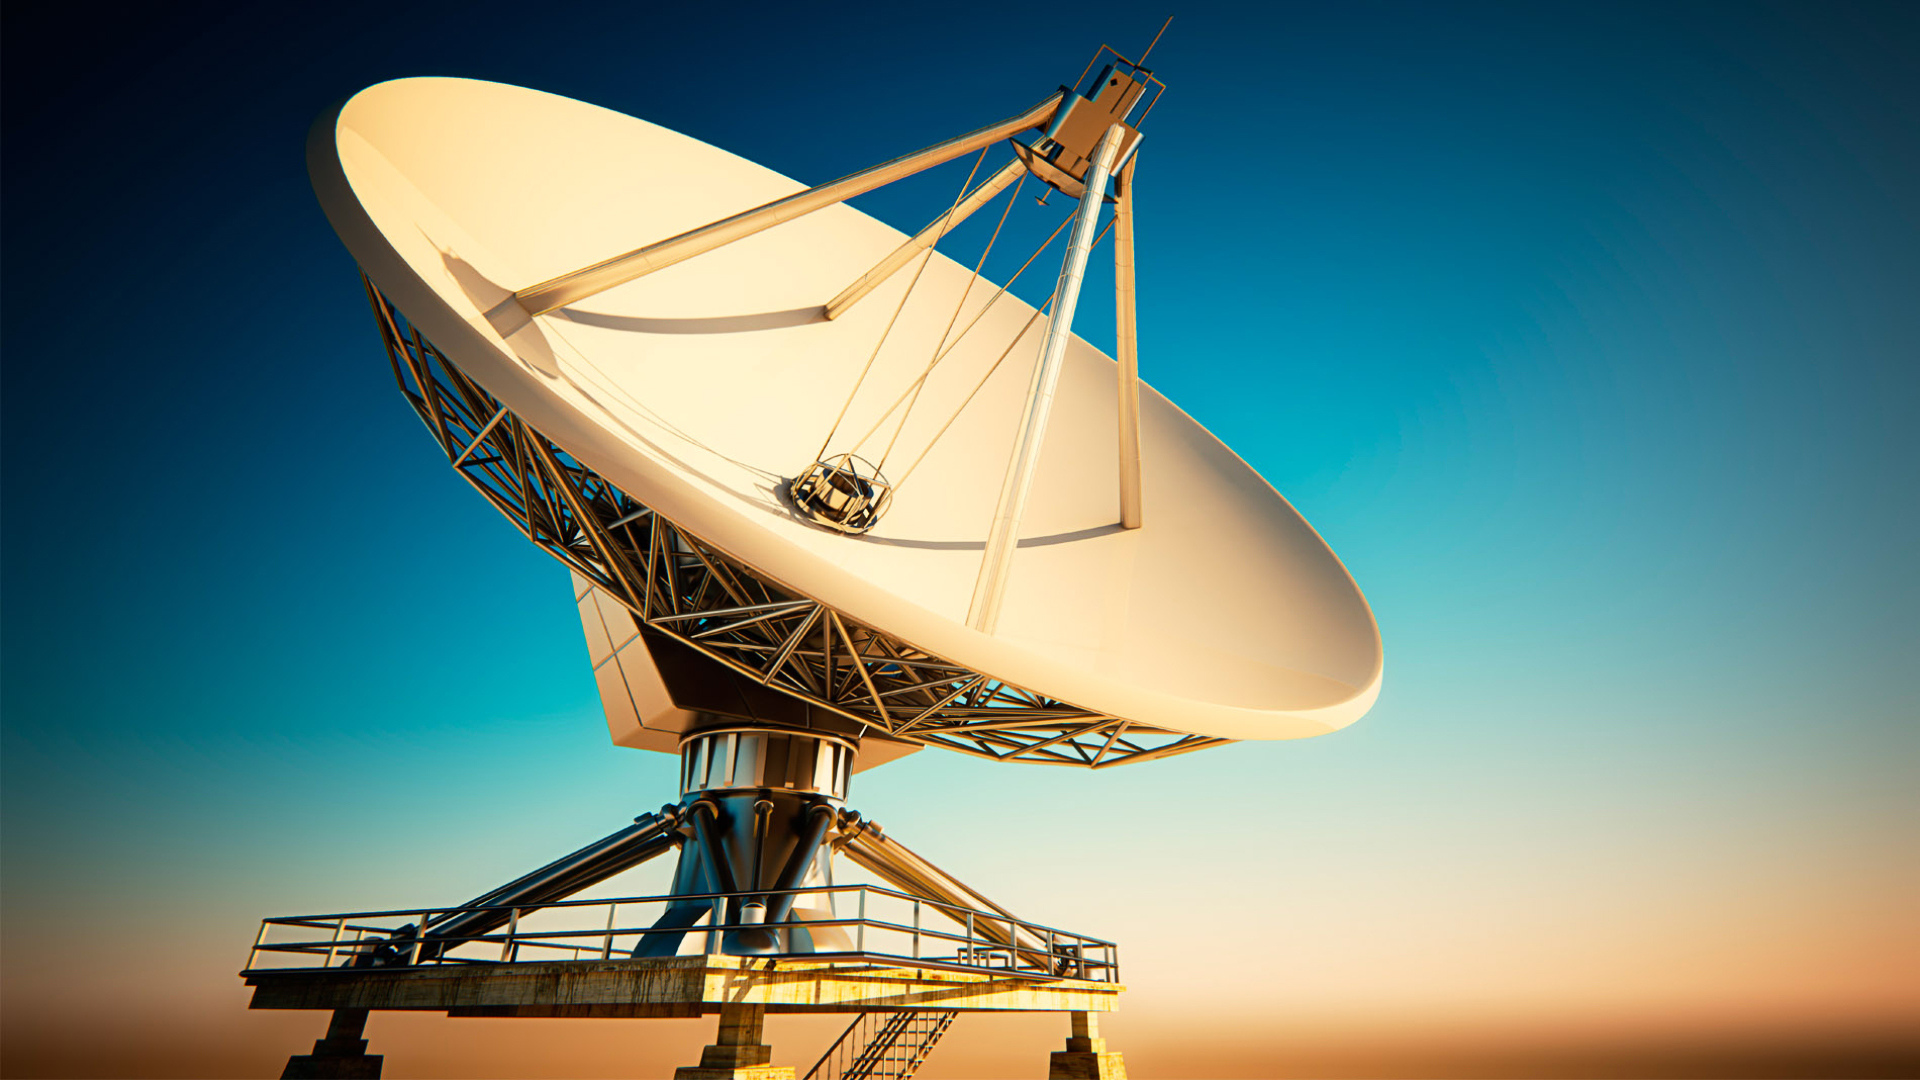 Satellite sky communication dish space wallpaper ...